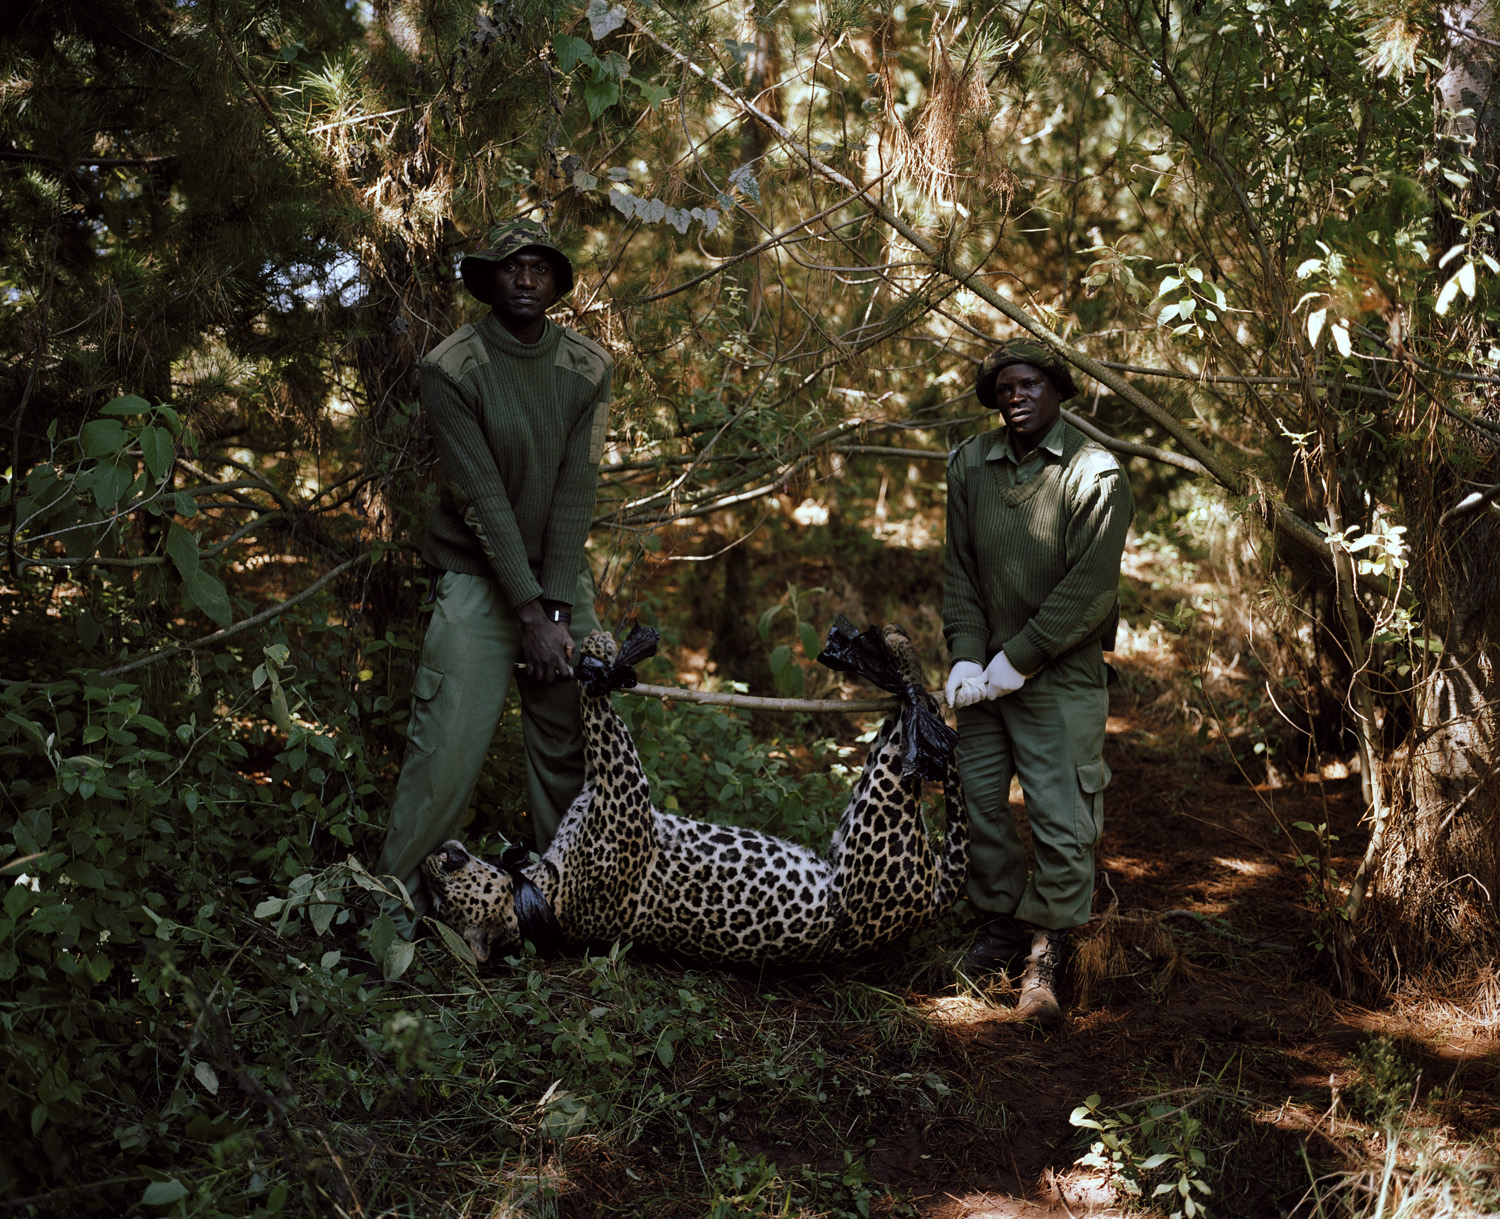 A leopard caught and killed in a poachers' snare is removed by conservancy rangers.